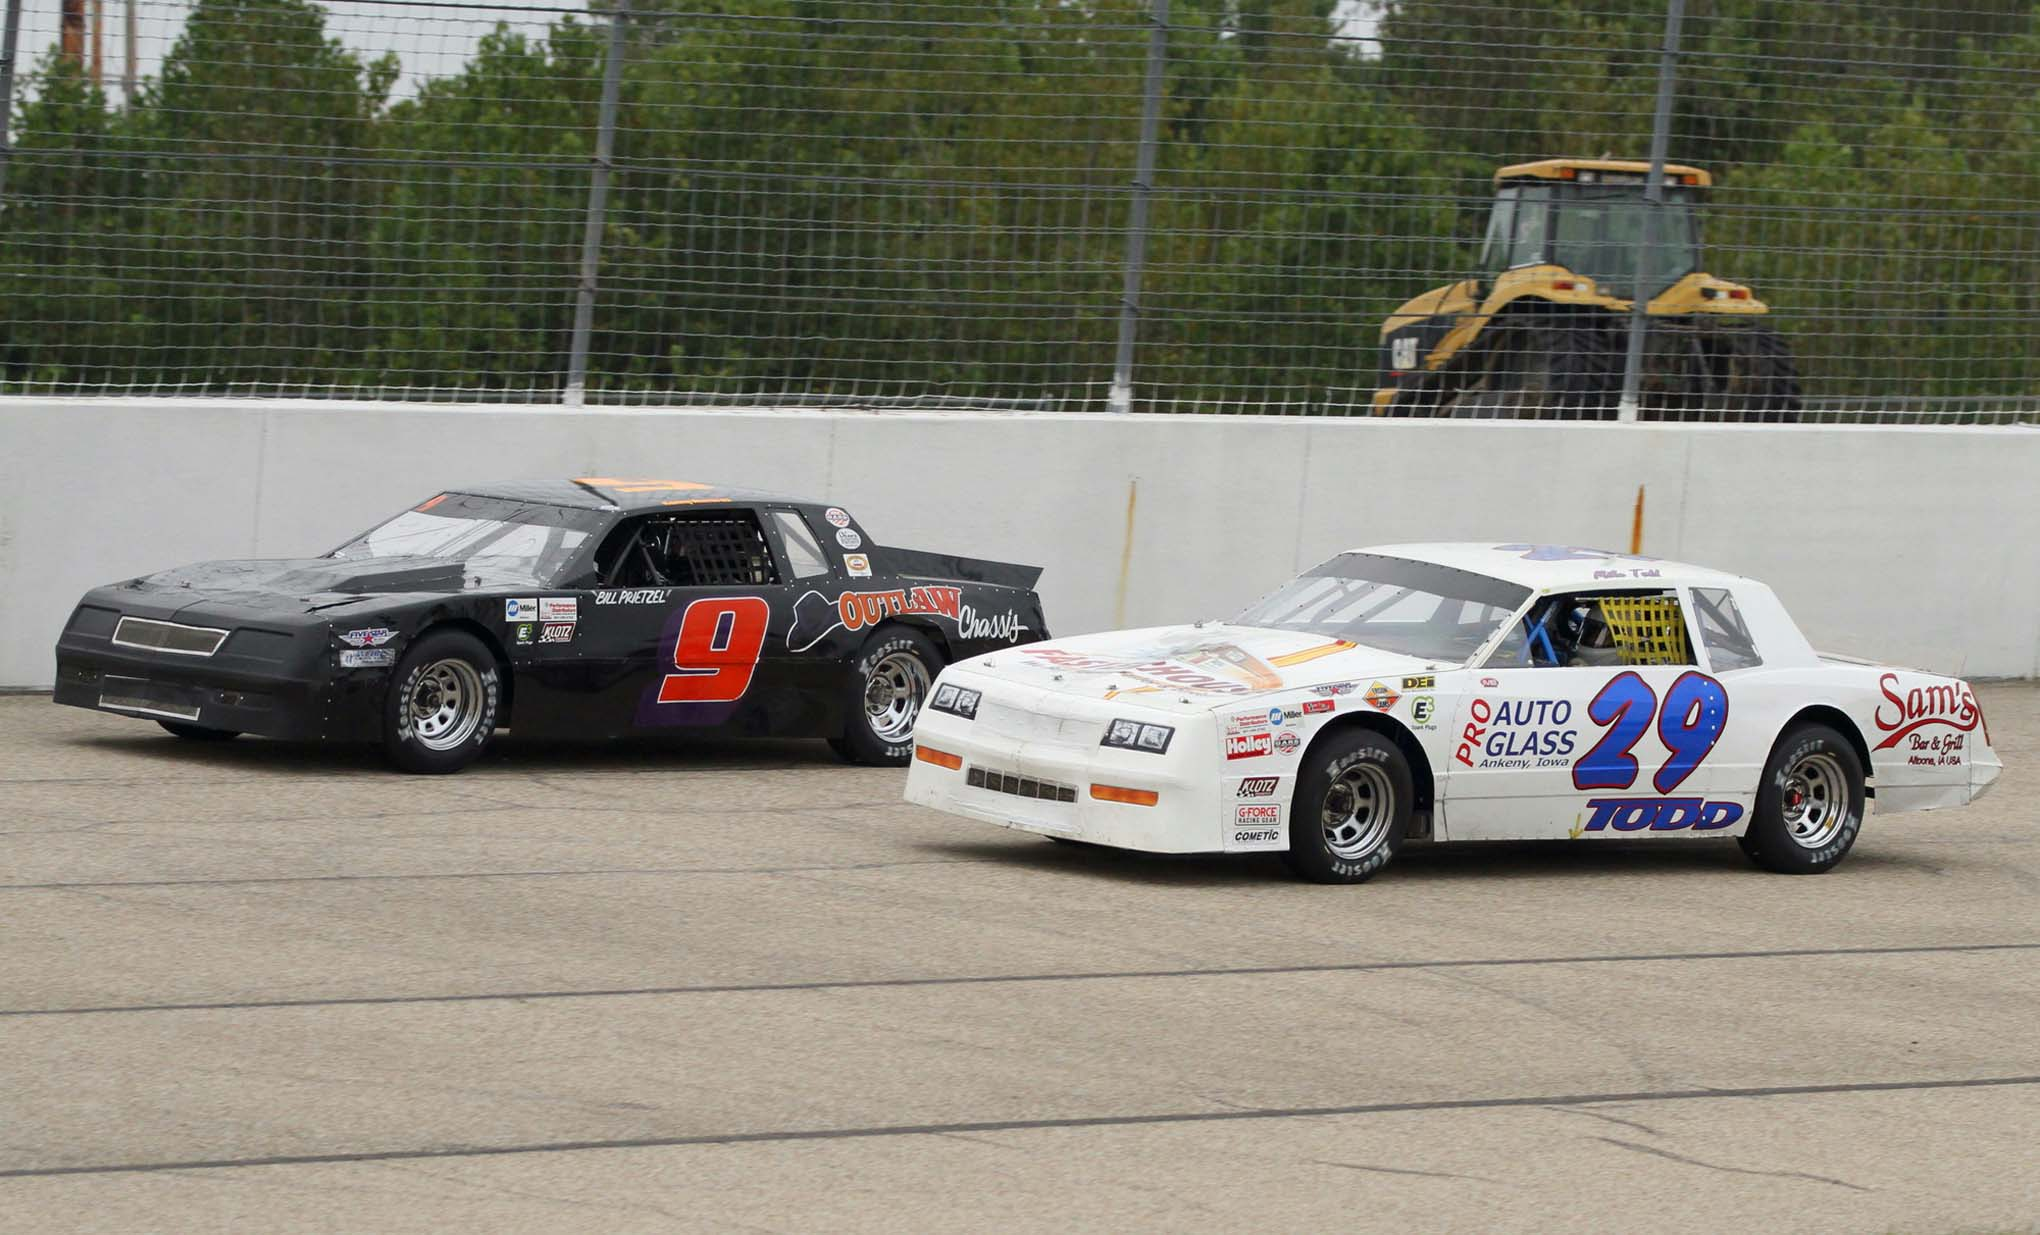 Veteran and Champion Racer Bill Prietzel battles with Mike Todd during the qualifying heat.